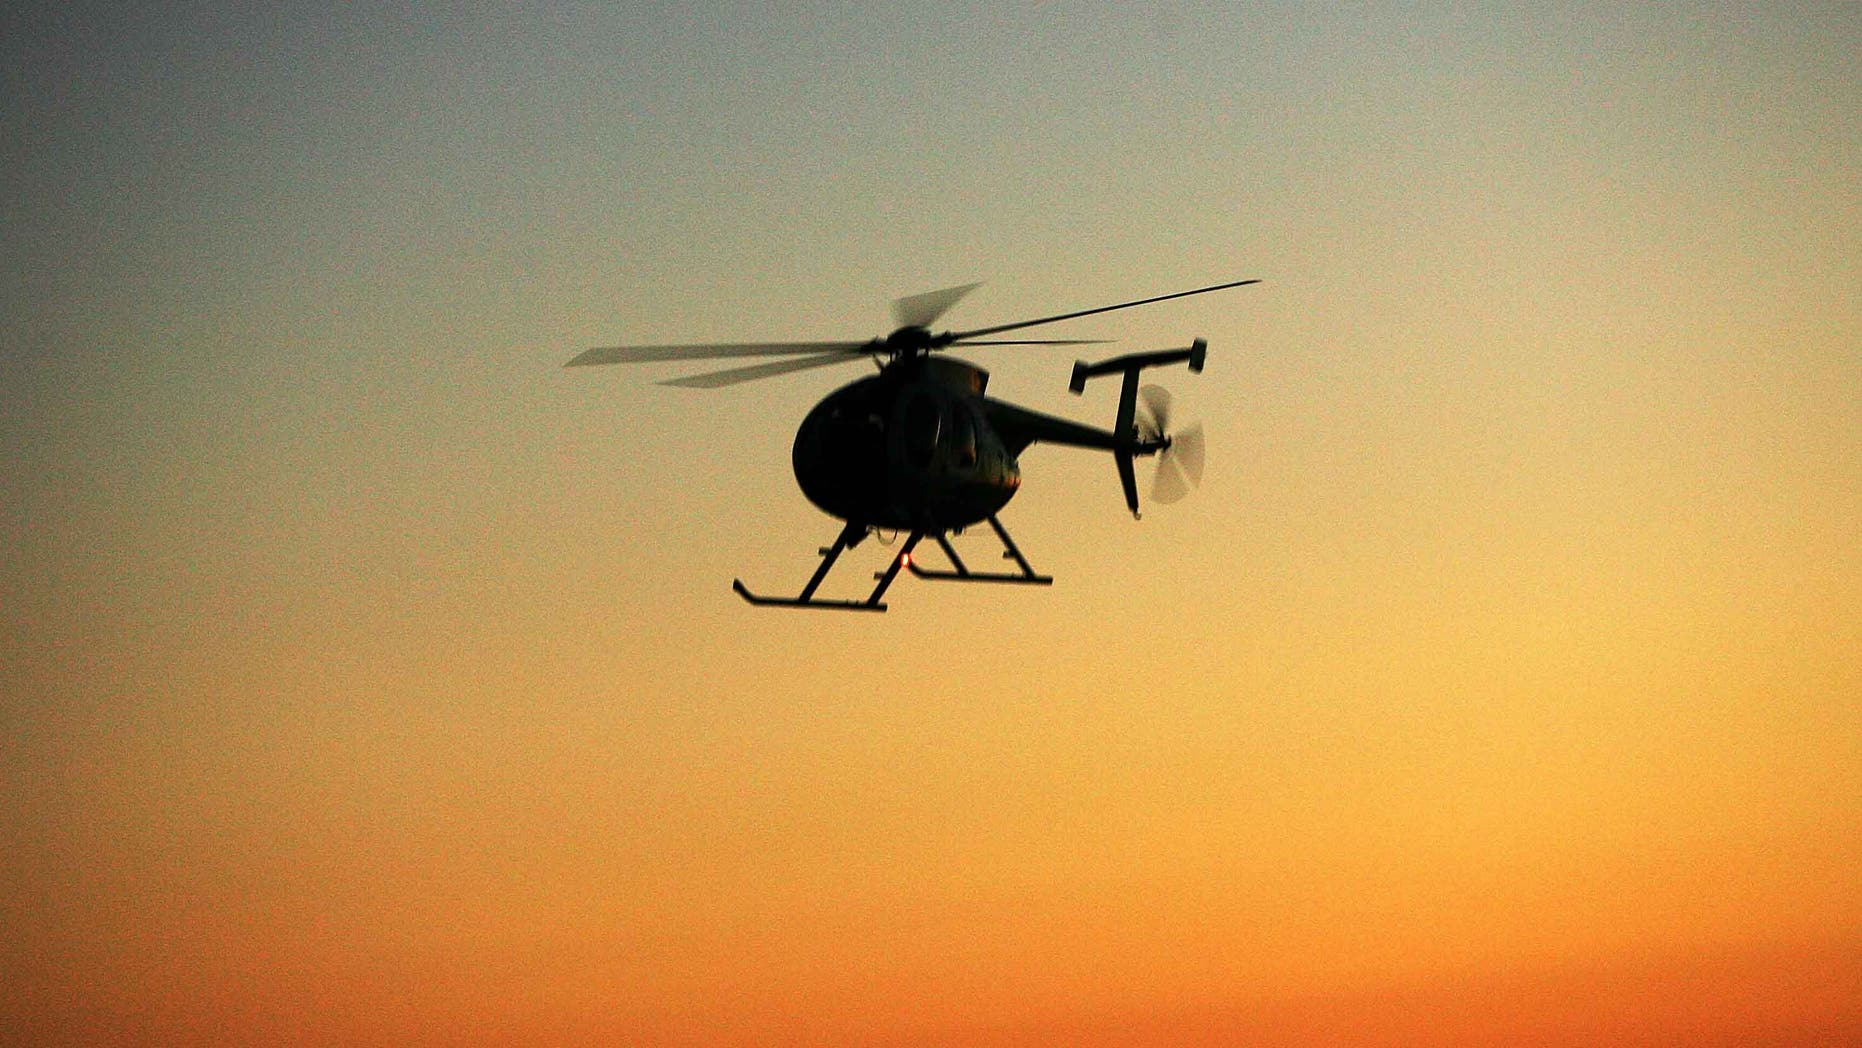 JACUMBA, CA - APRIL 8:  A Border Patrol helicopter flies along the border after sunset as the Minuteman Civil Defense Corps (MCDC) patrols the U.S.-Mexico border in search of illegal immigrants and drug smugglers April 8, 2006 near Jacumba, California. MCDC is conducting the patrols in all four U.S.-Mexico border states and in several places along the Canadian border throughout the month of April as Congress considers changes to immigration and border security laws. Late last week, a ?breakthrough? compromise Senate leaders announced in the overhaul of immigration law, that could have led to the passage of a bill that would give the nation's estimated 11 million-plus illegal immigrants a chance to obtain U.S. citizenship, fell apart before the start of the two-week Spring recess.  (Photo by David McNew/Getty Images)